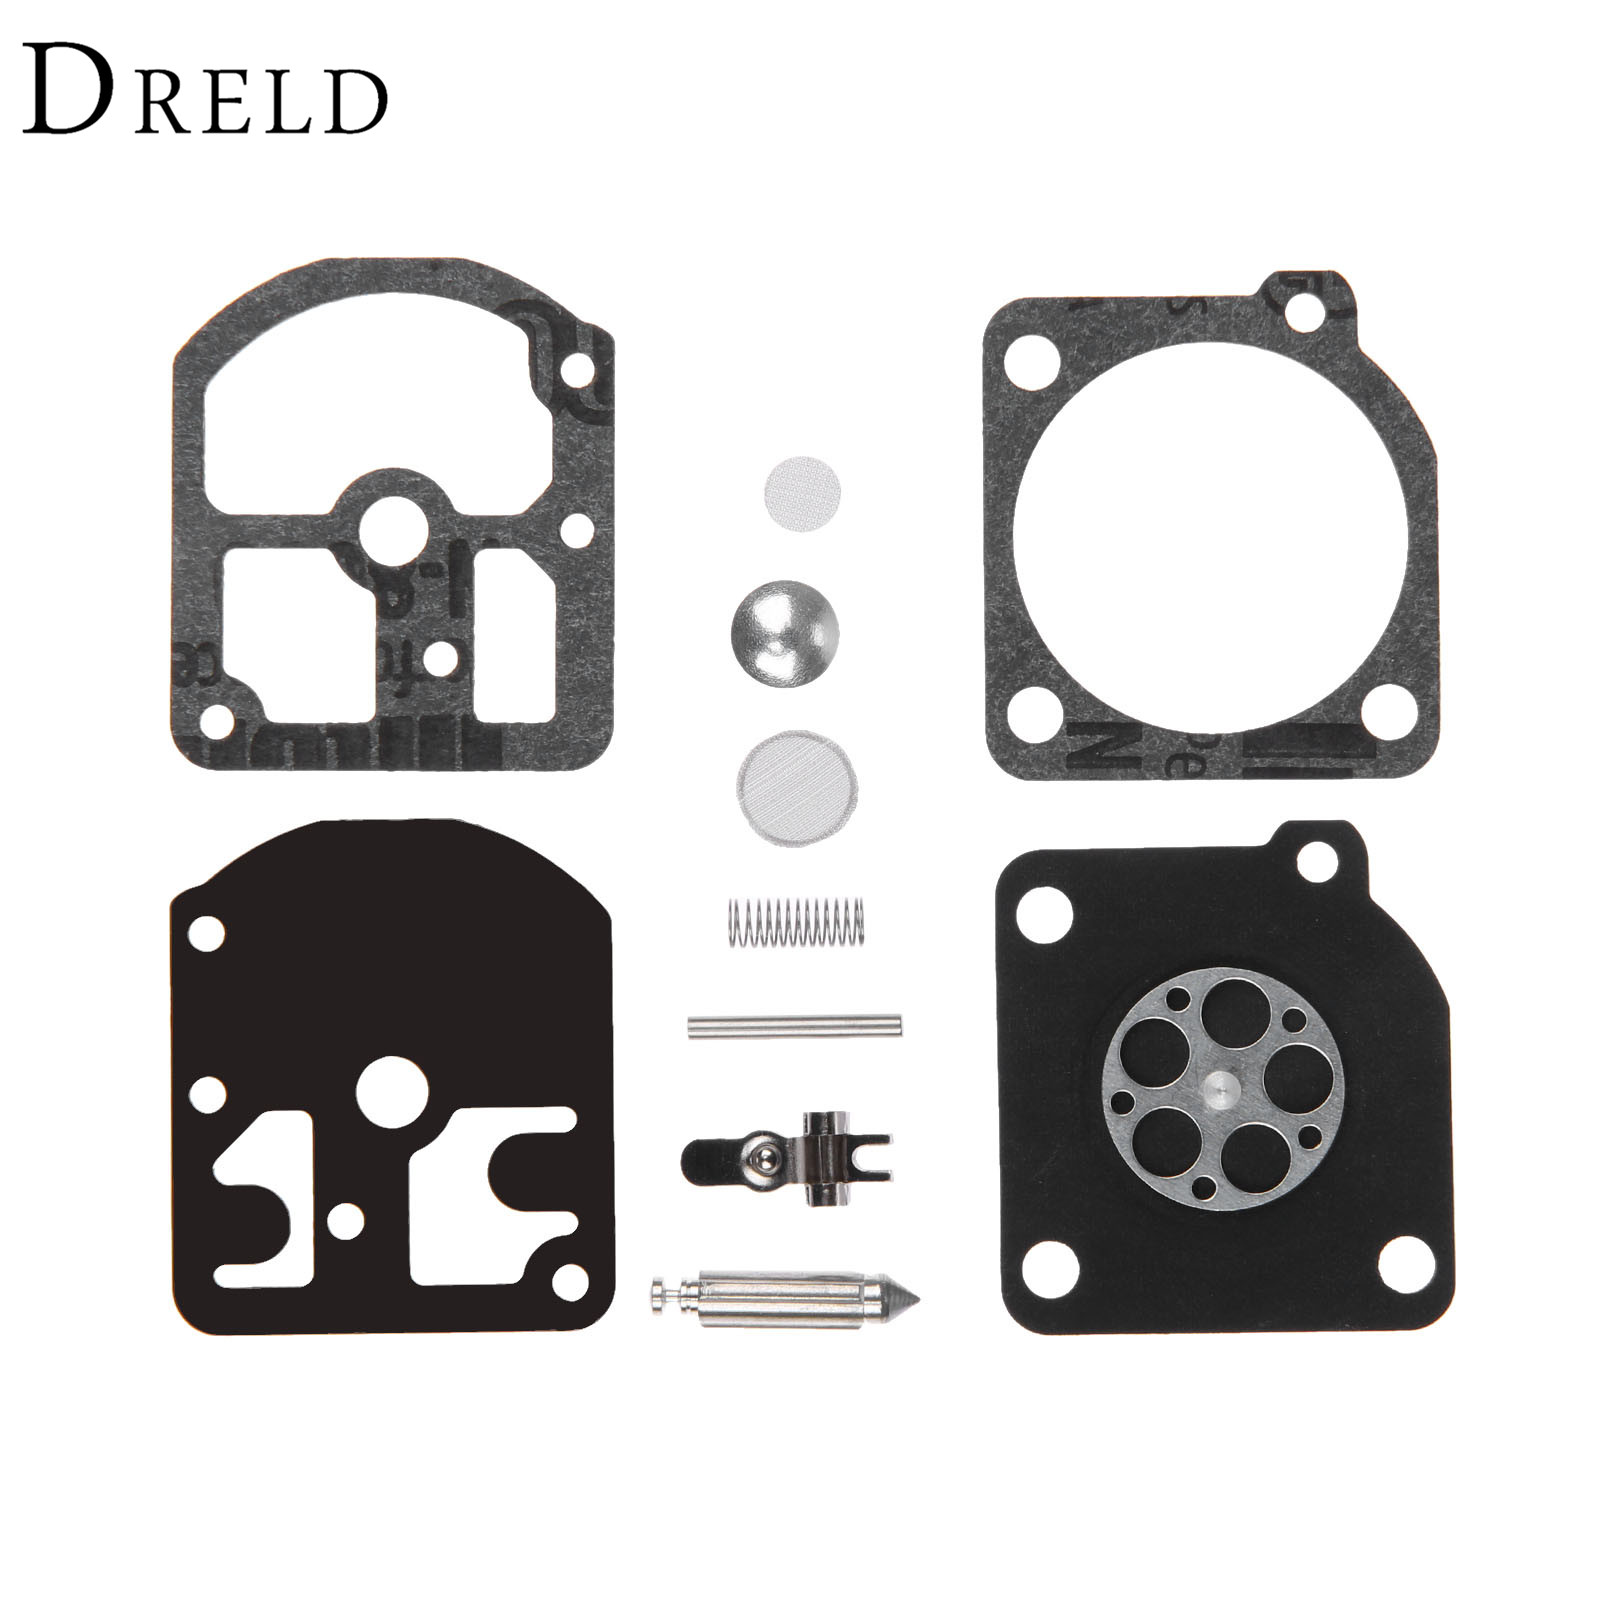 DRELD RB-11 Carburetor Carb Rebuild Tool Repair Gasket Kit for Stihl 009 010 011 012 011AV C1S-S1A C1S-S1B Chainsaw Parts AE0815 carburetor carb rebuild kit zama rb 42 for stihl 08 070 090 ts350 ts360 tillotson rk 83hl